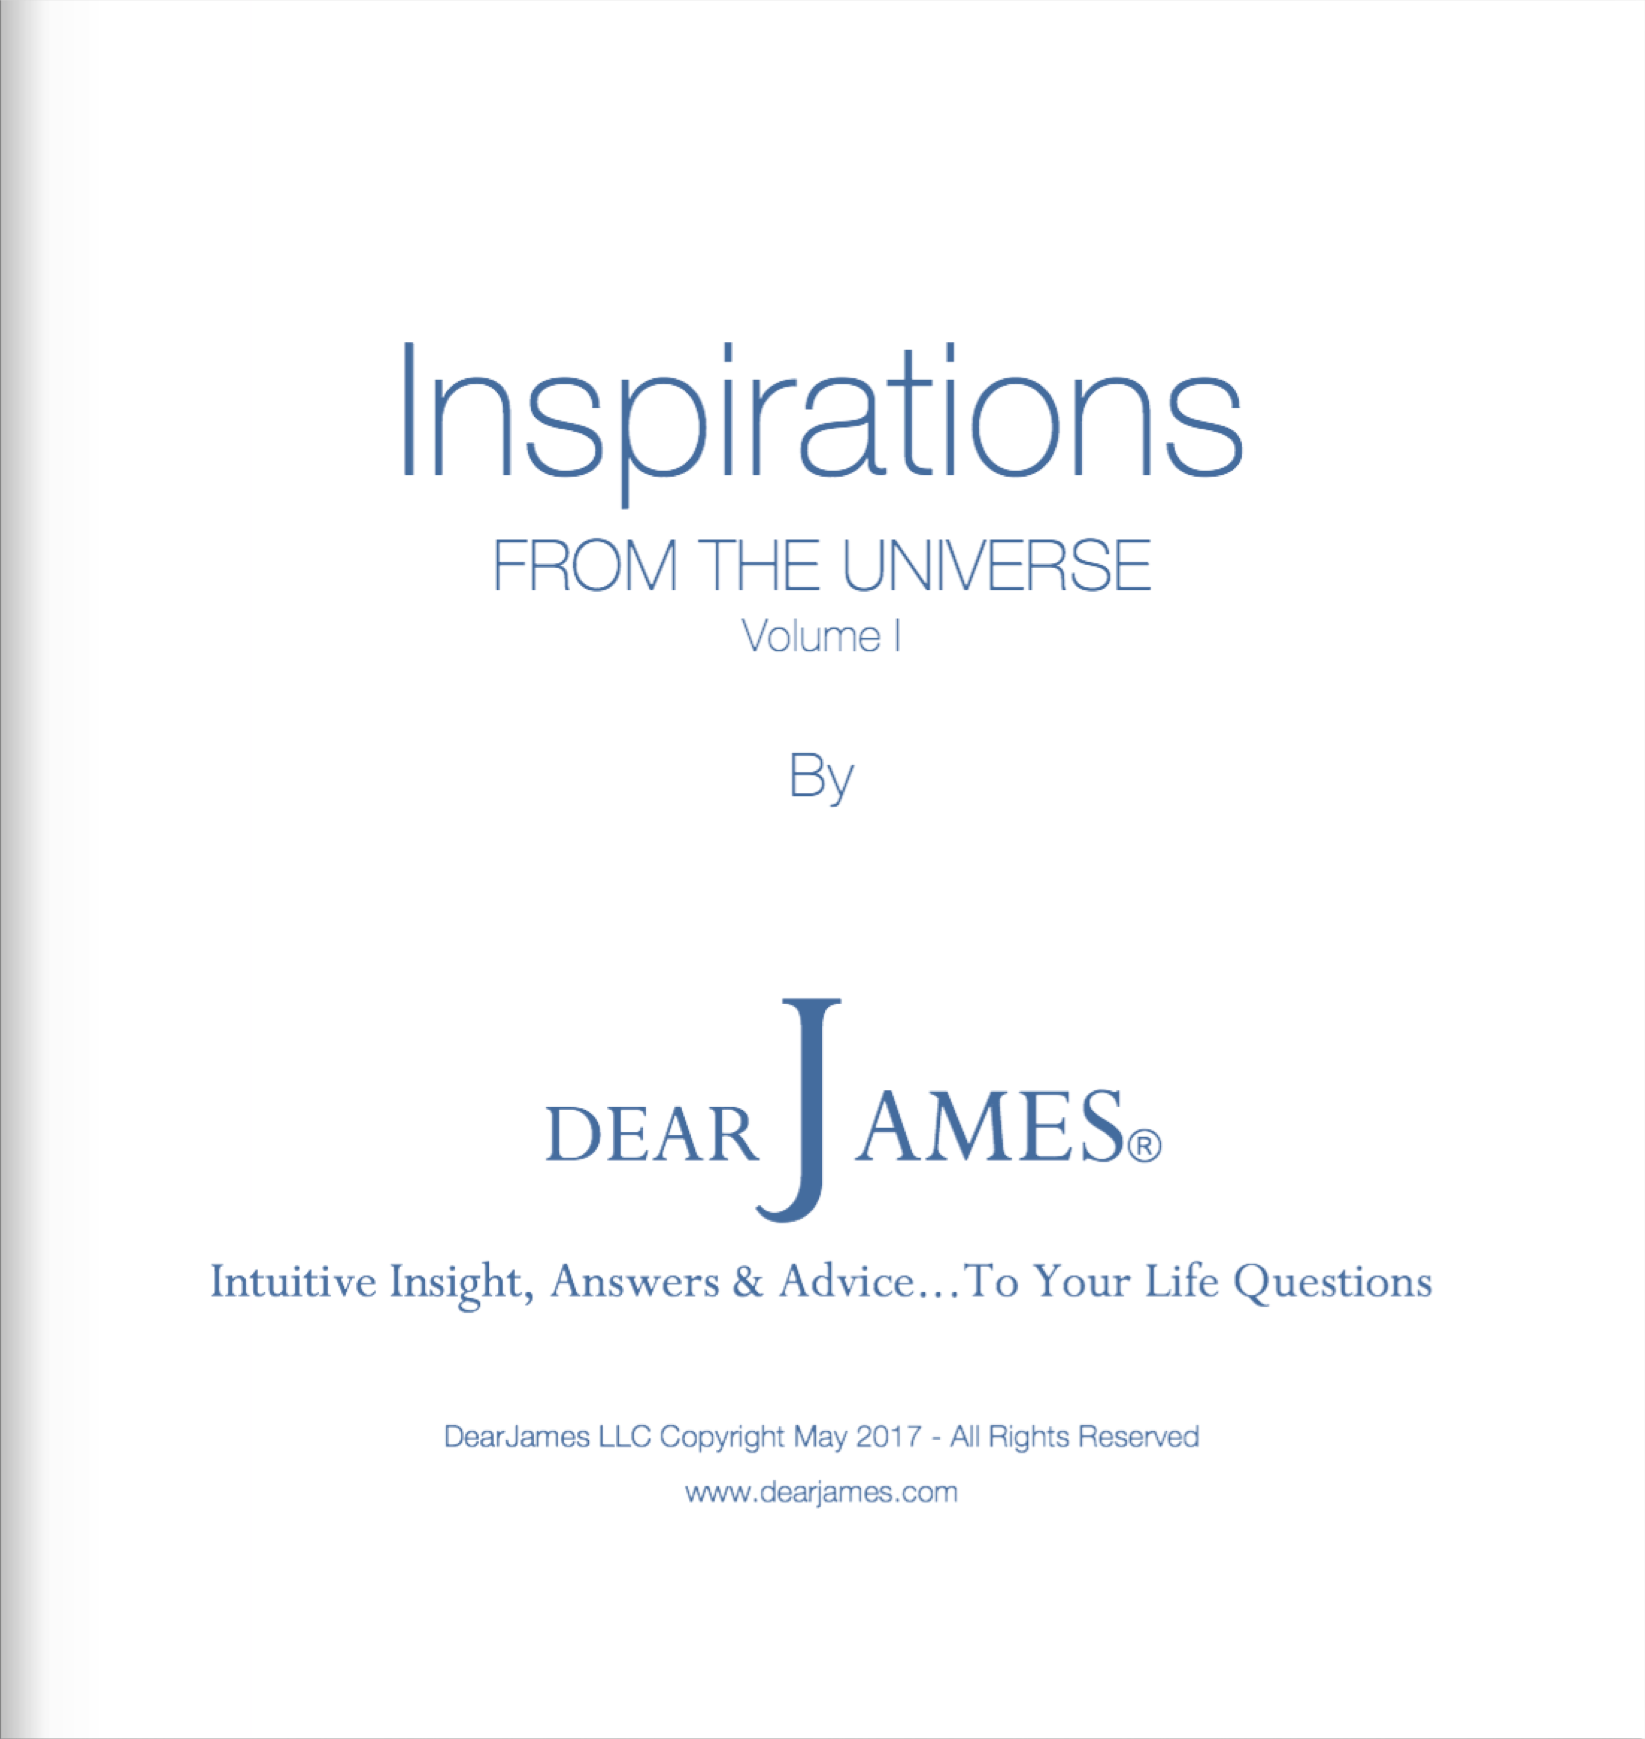 Title Page - Inspirations from the Universe - Volume I